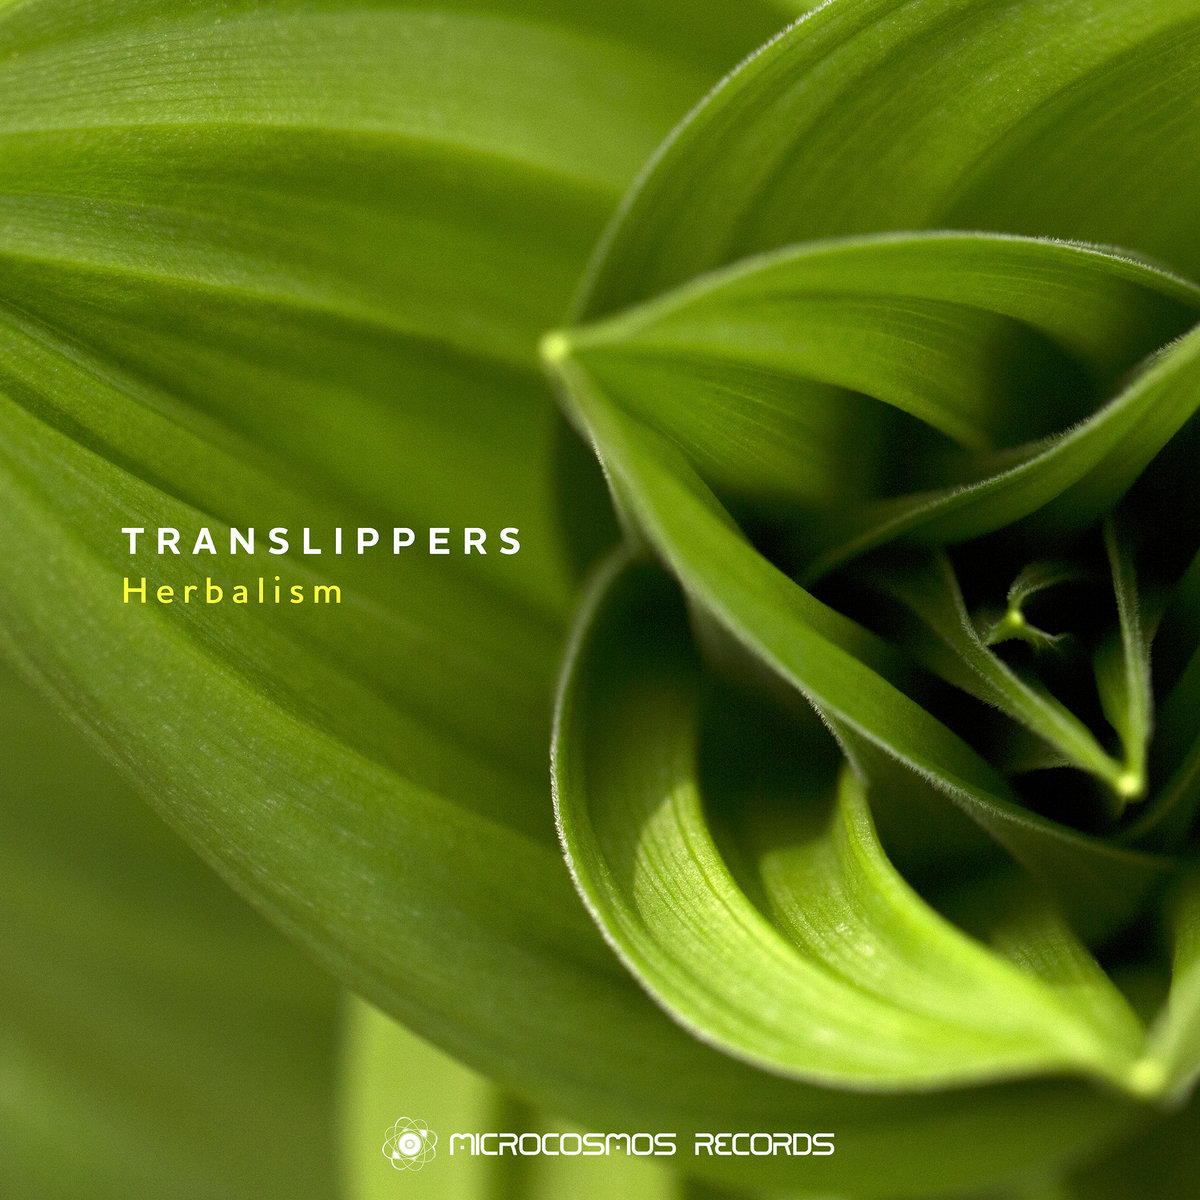 Translippers - Herbalism @ 'Herbalism' album (ambient, chill-out)